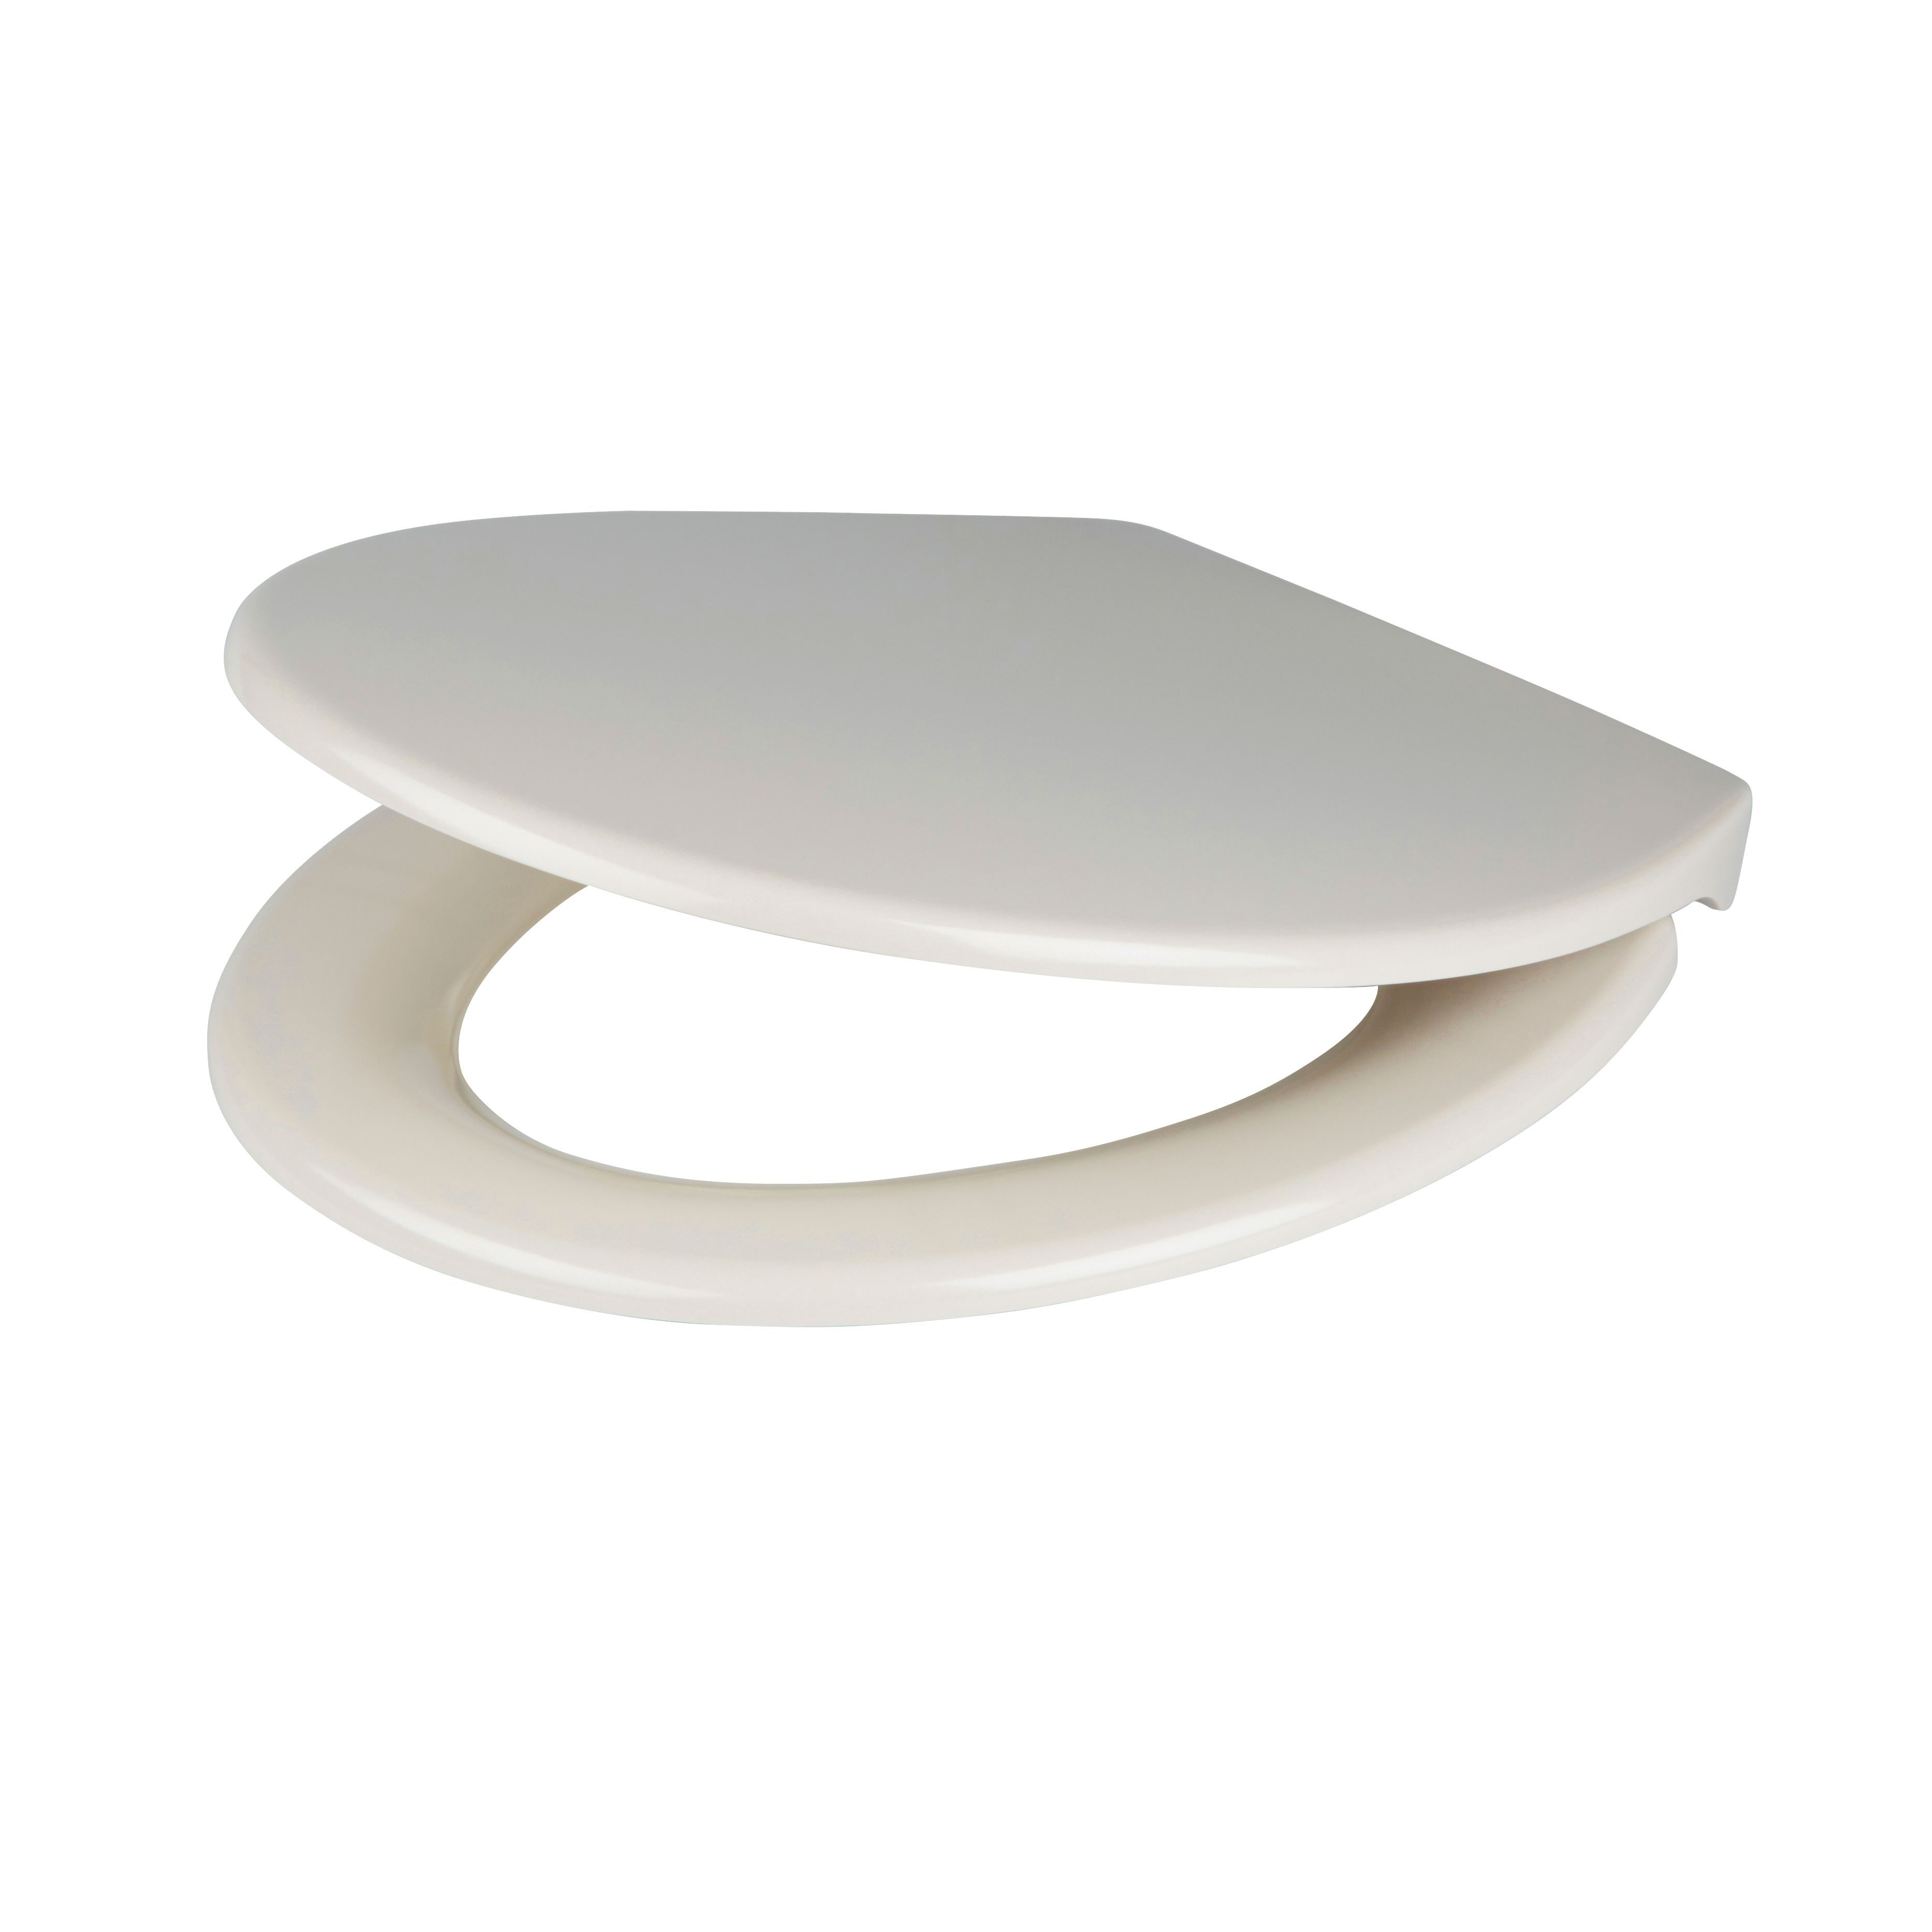 cooke and lewis soft close toilet seat fitting instructions